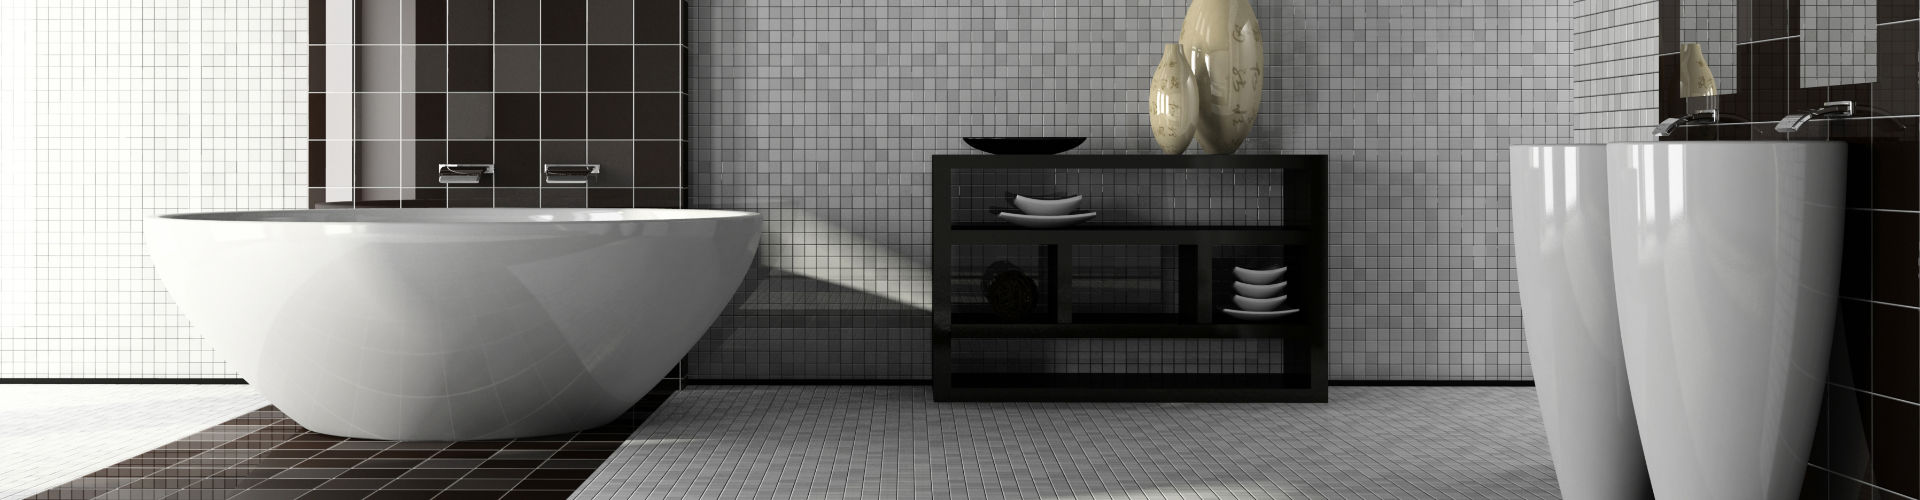 Bathroom with Floor and Wall Tile